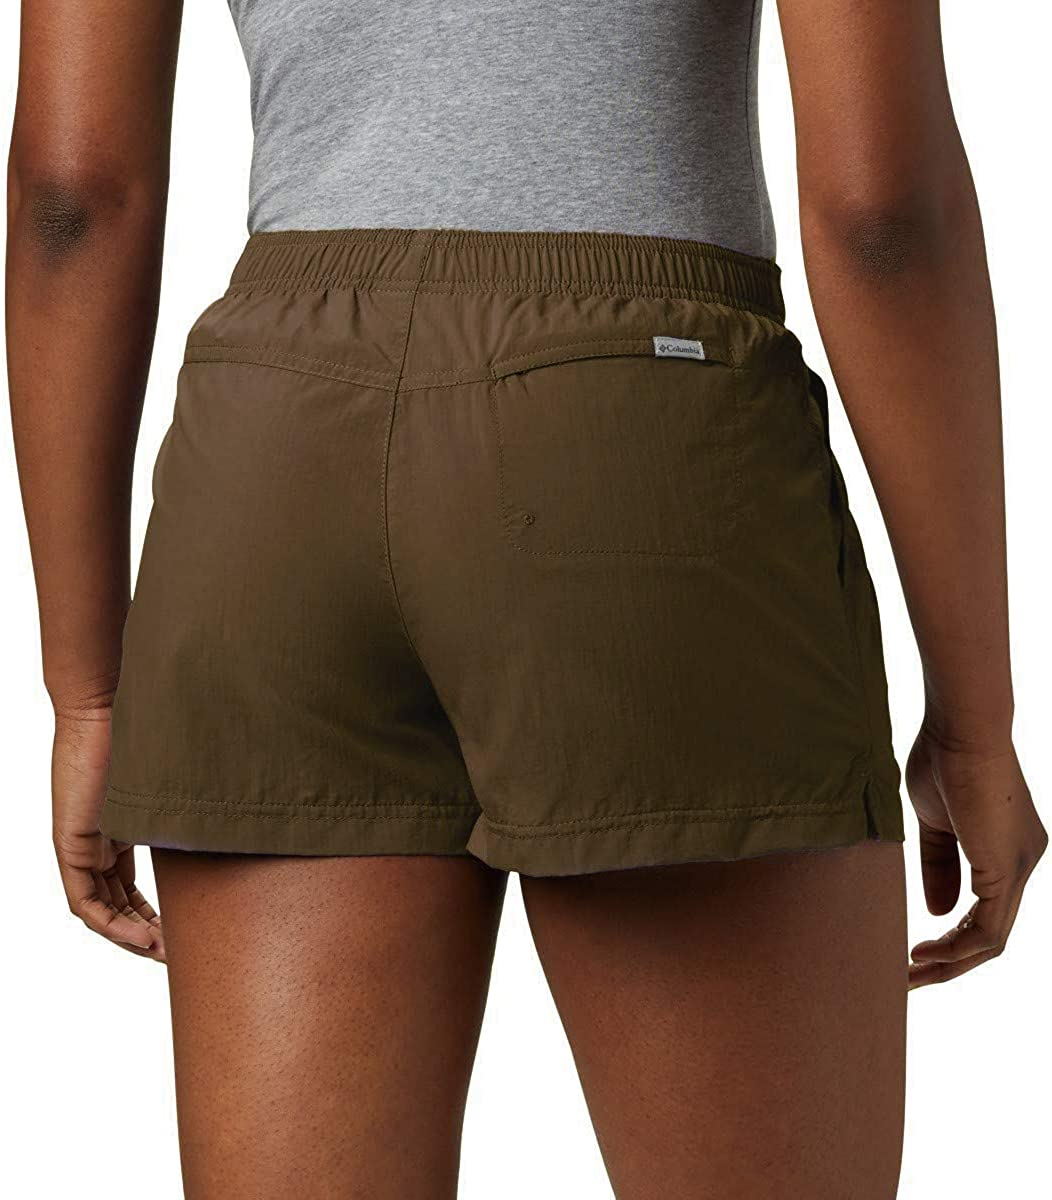 Columbia Women's Sandy River Short, Breathable, Sun Protection